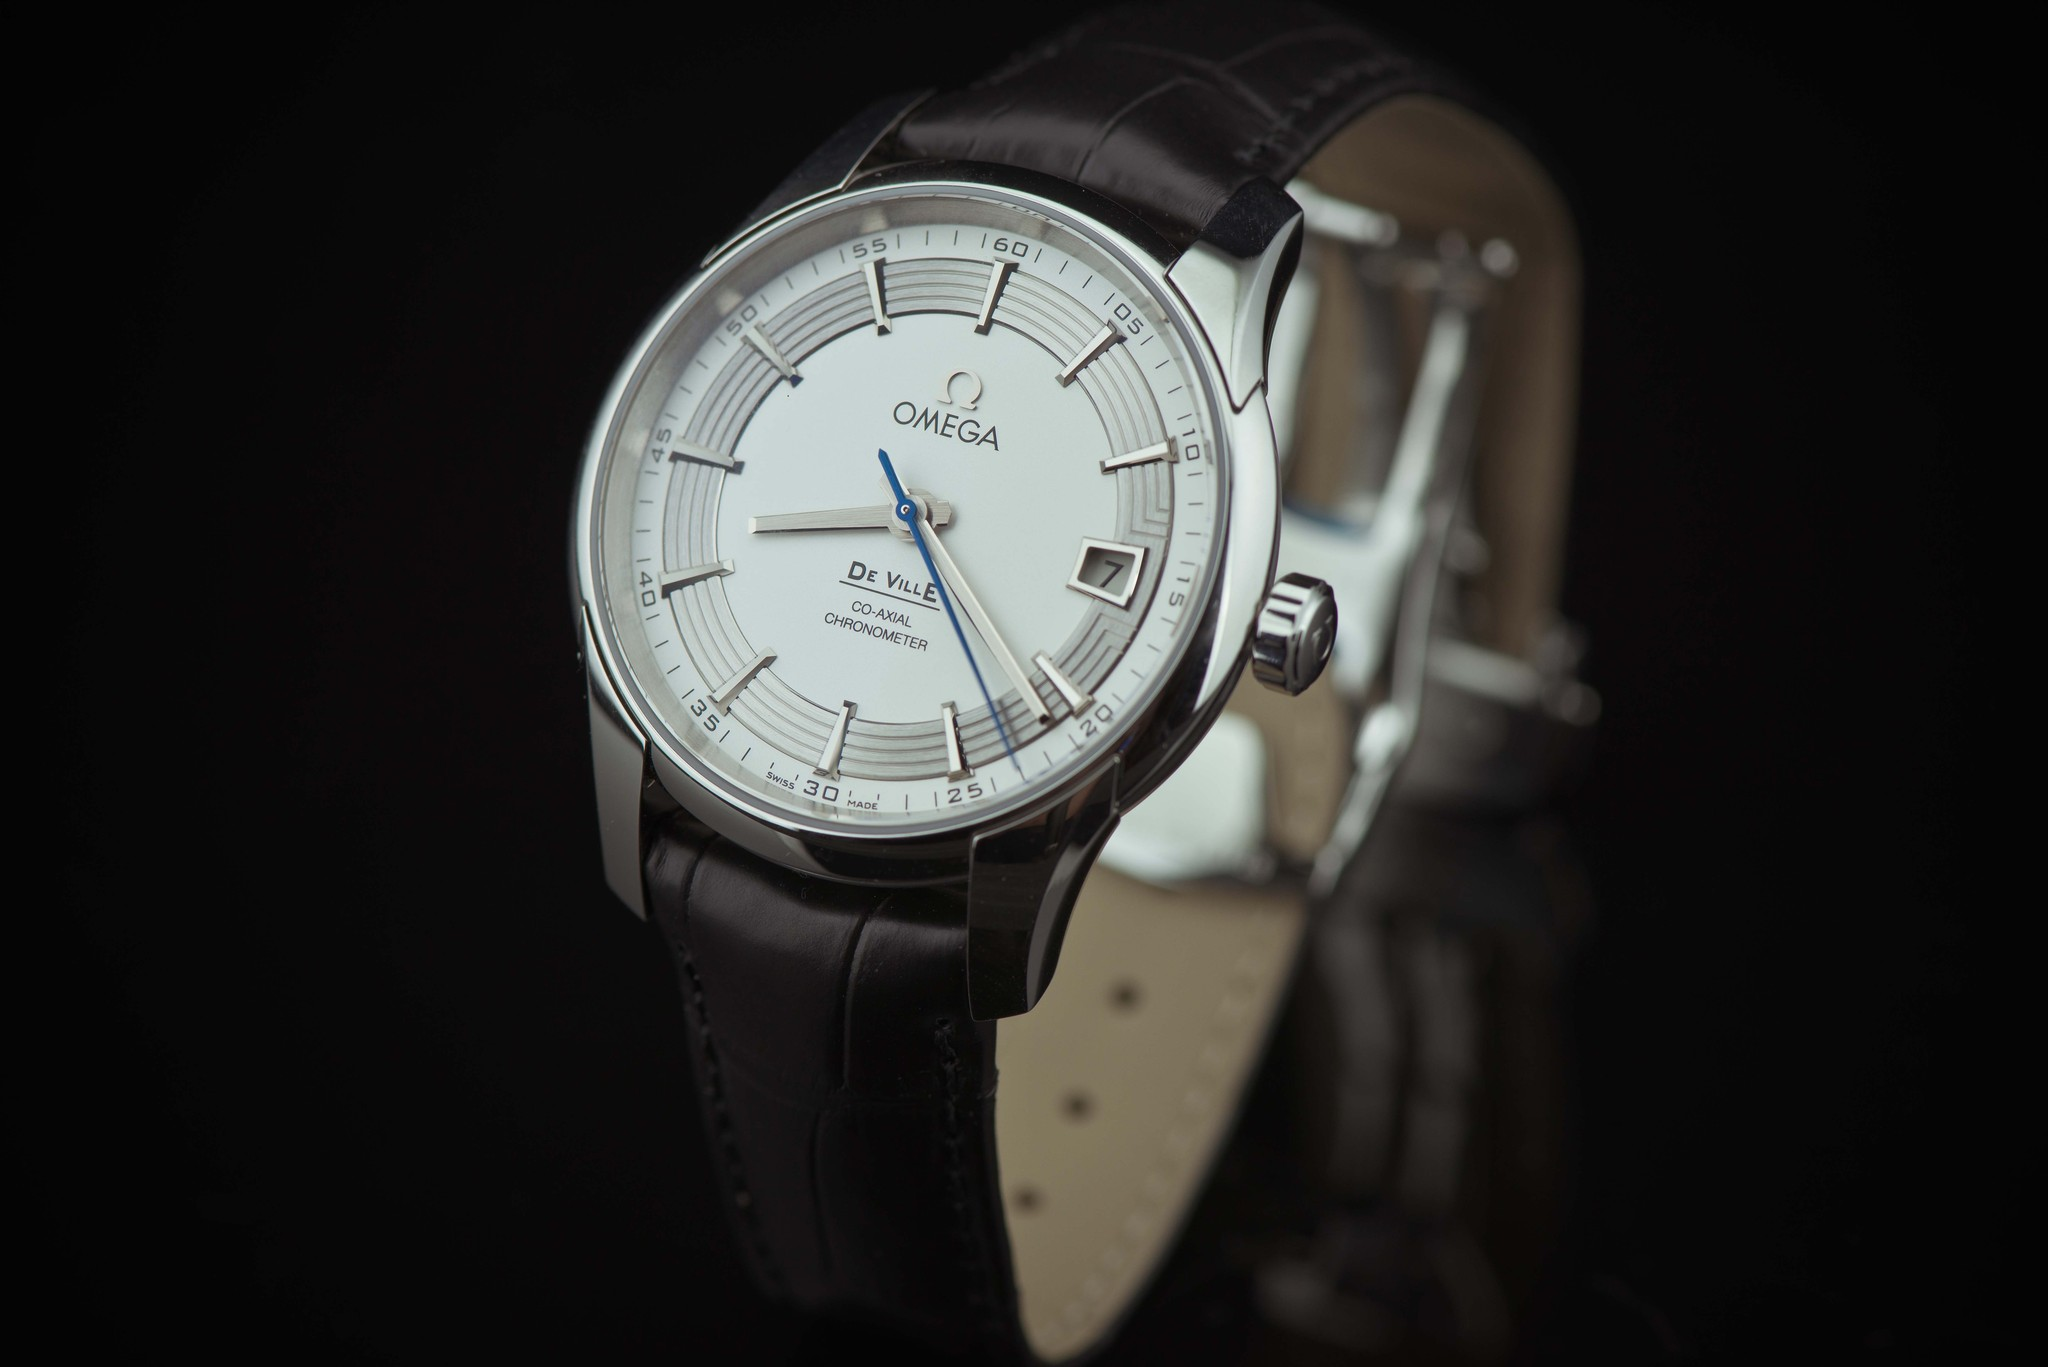 Omega Watches Hd Wallpaper Background Image 2048x1367